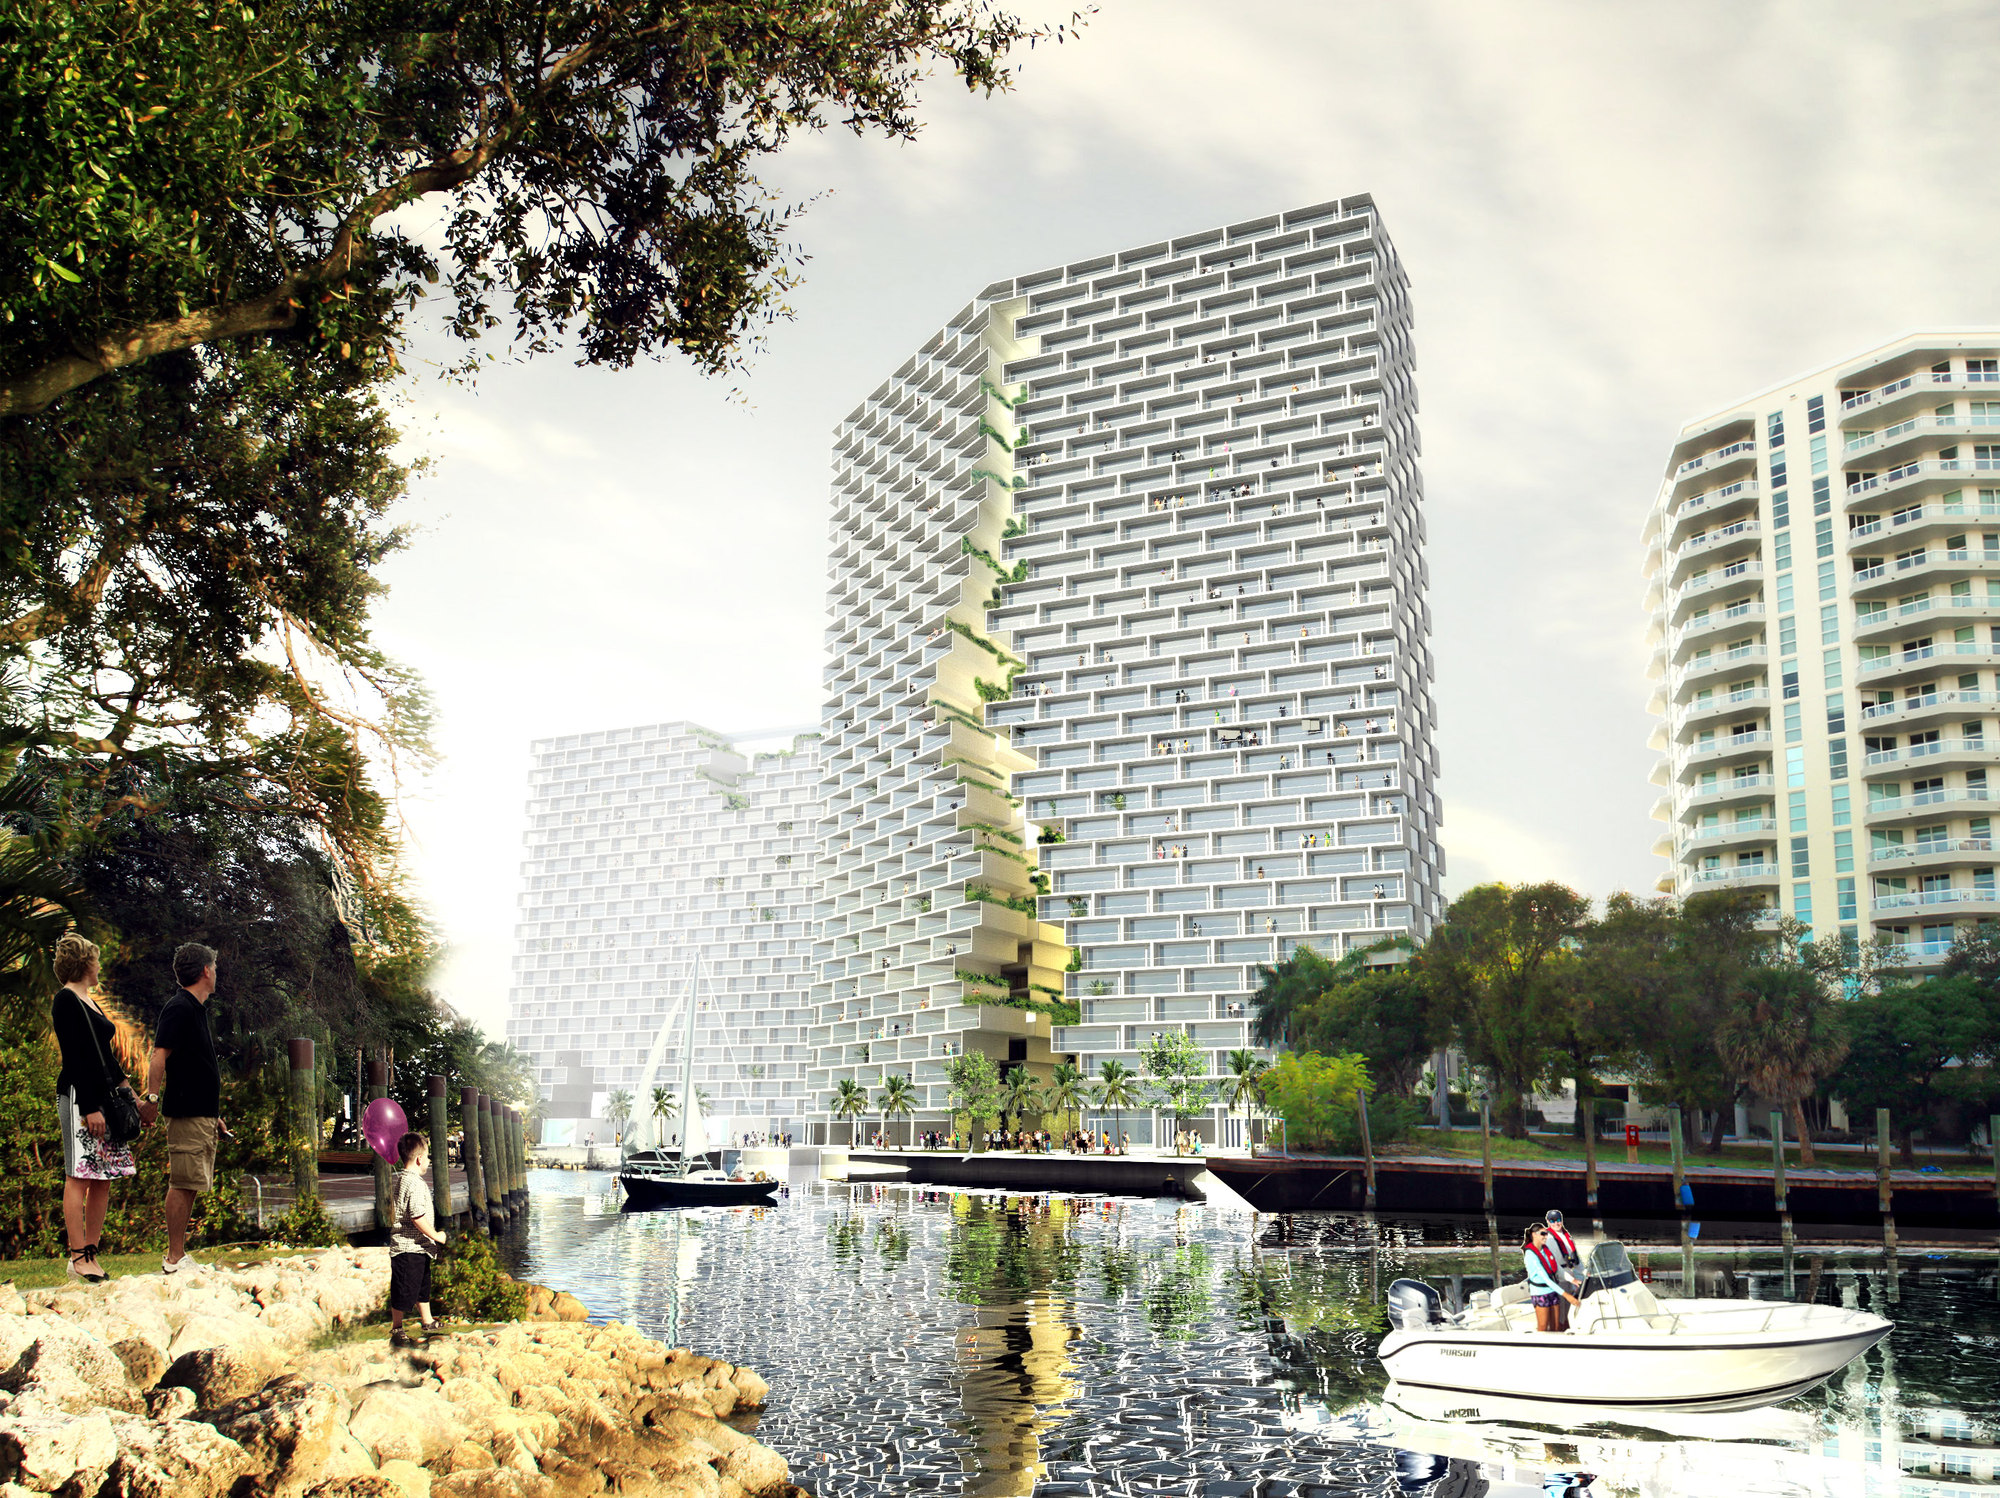 Marina lofts bjarke ingels group big the superslice Architect florida